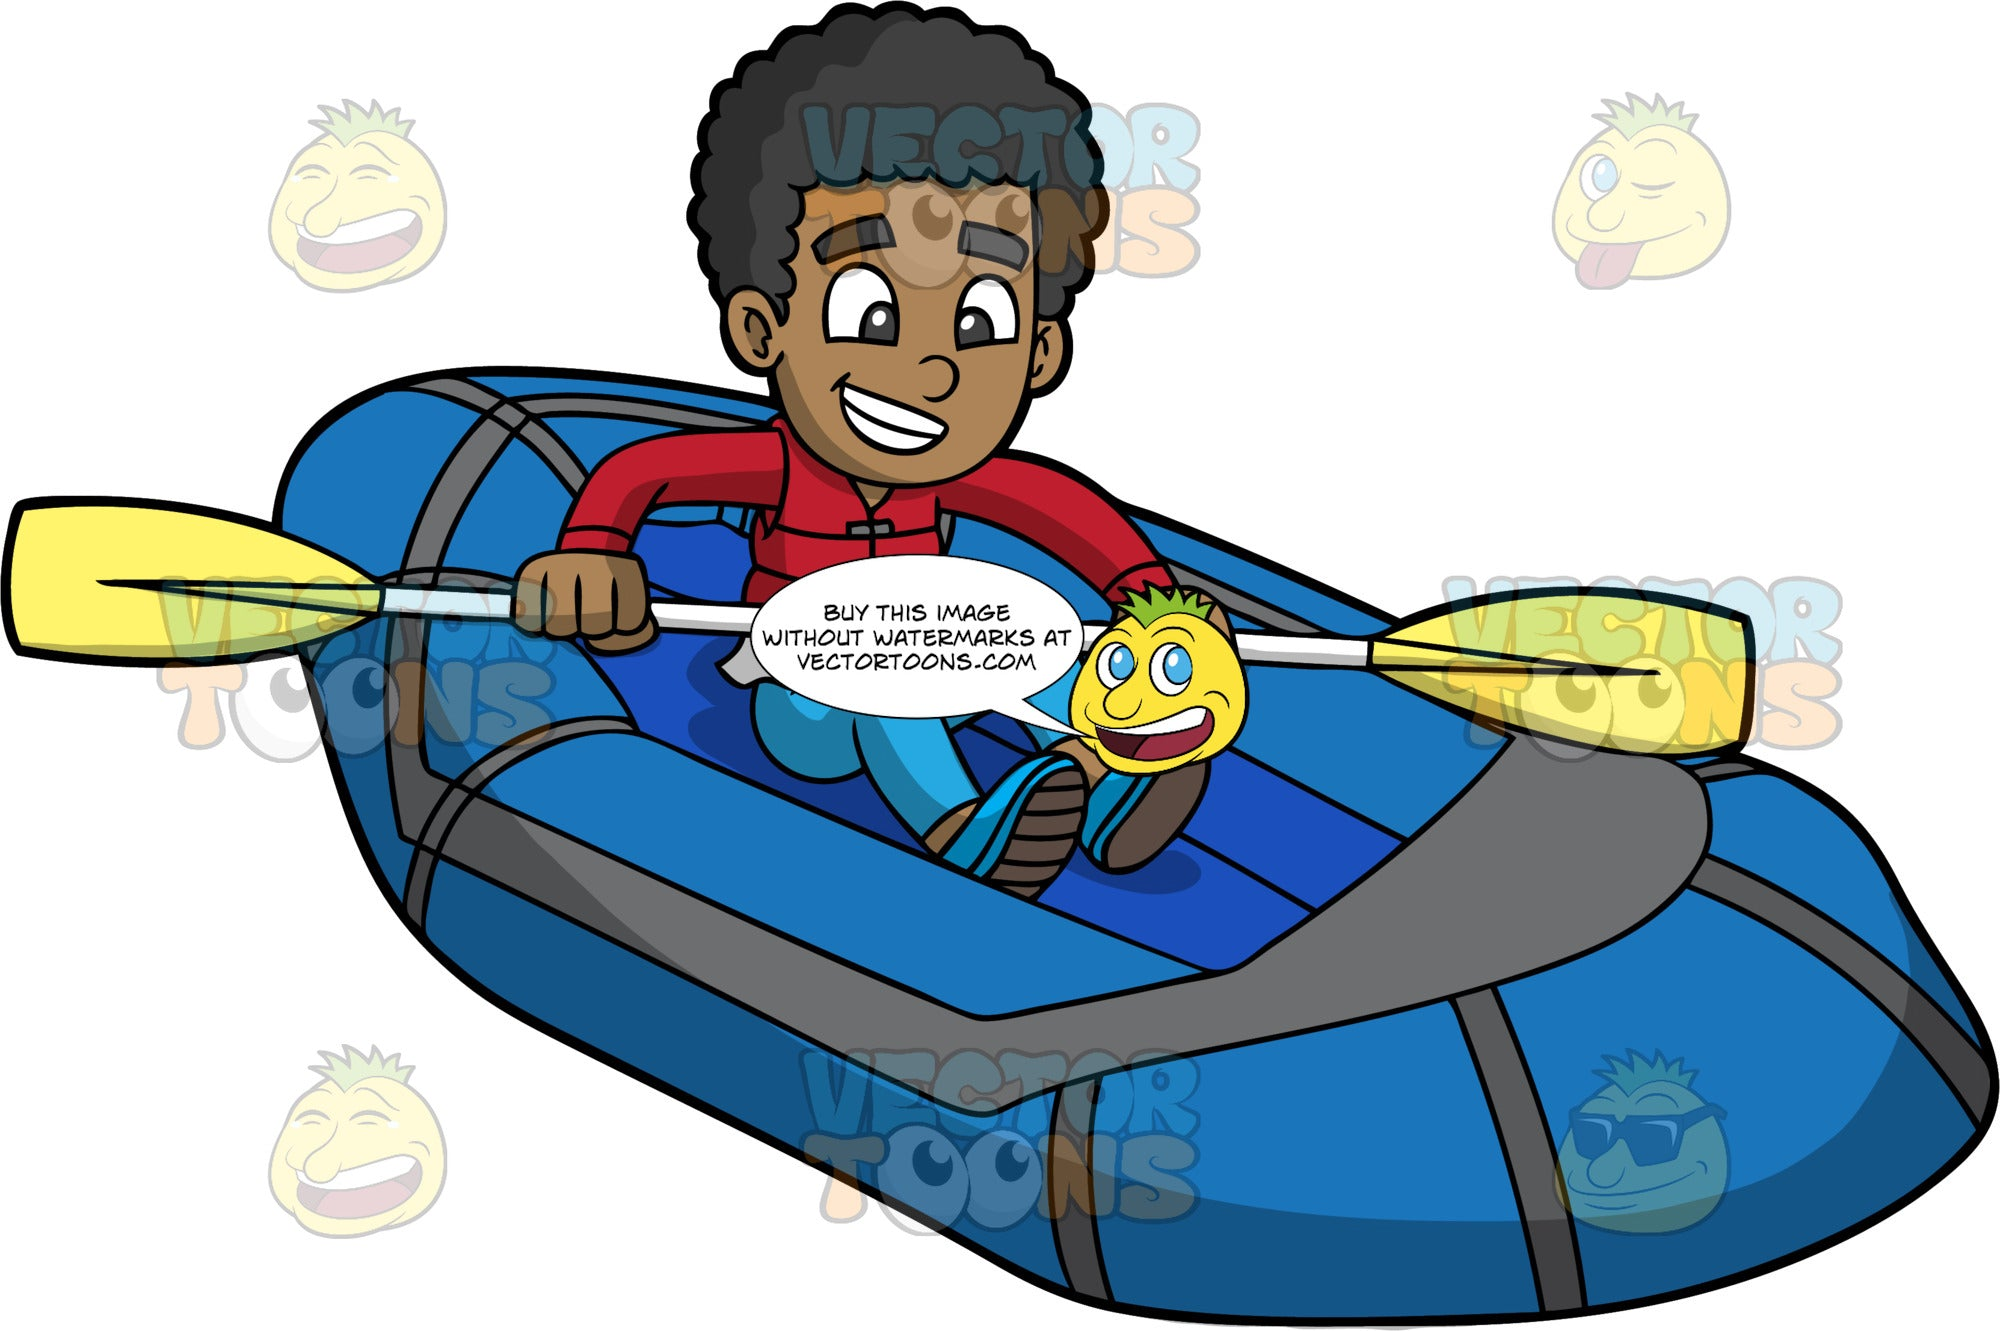 A Black Boy Steering His Blue Raft Through The Water. A black boy wearing blue pants, red shirt, red life jacket, and blue water shoes, smiles as he holds onto a double bladed paddle and sits in his blue inflatable raft